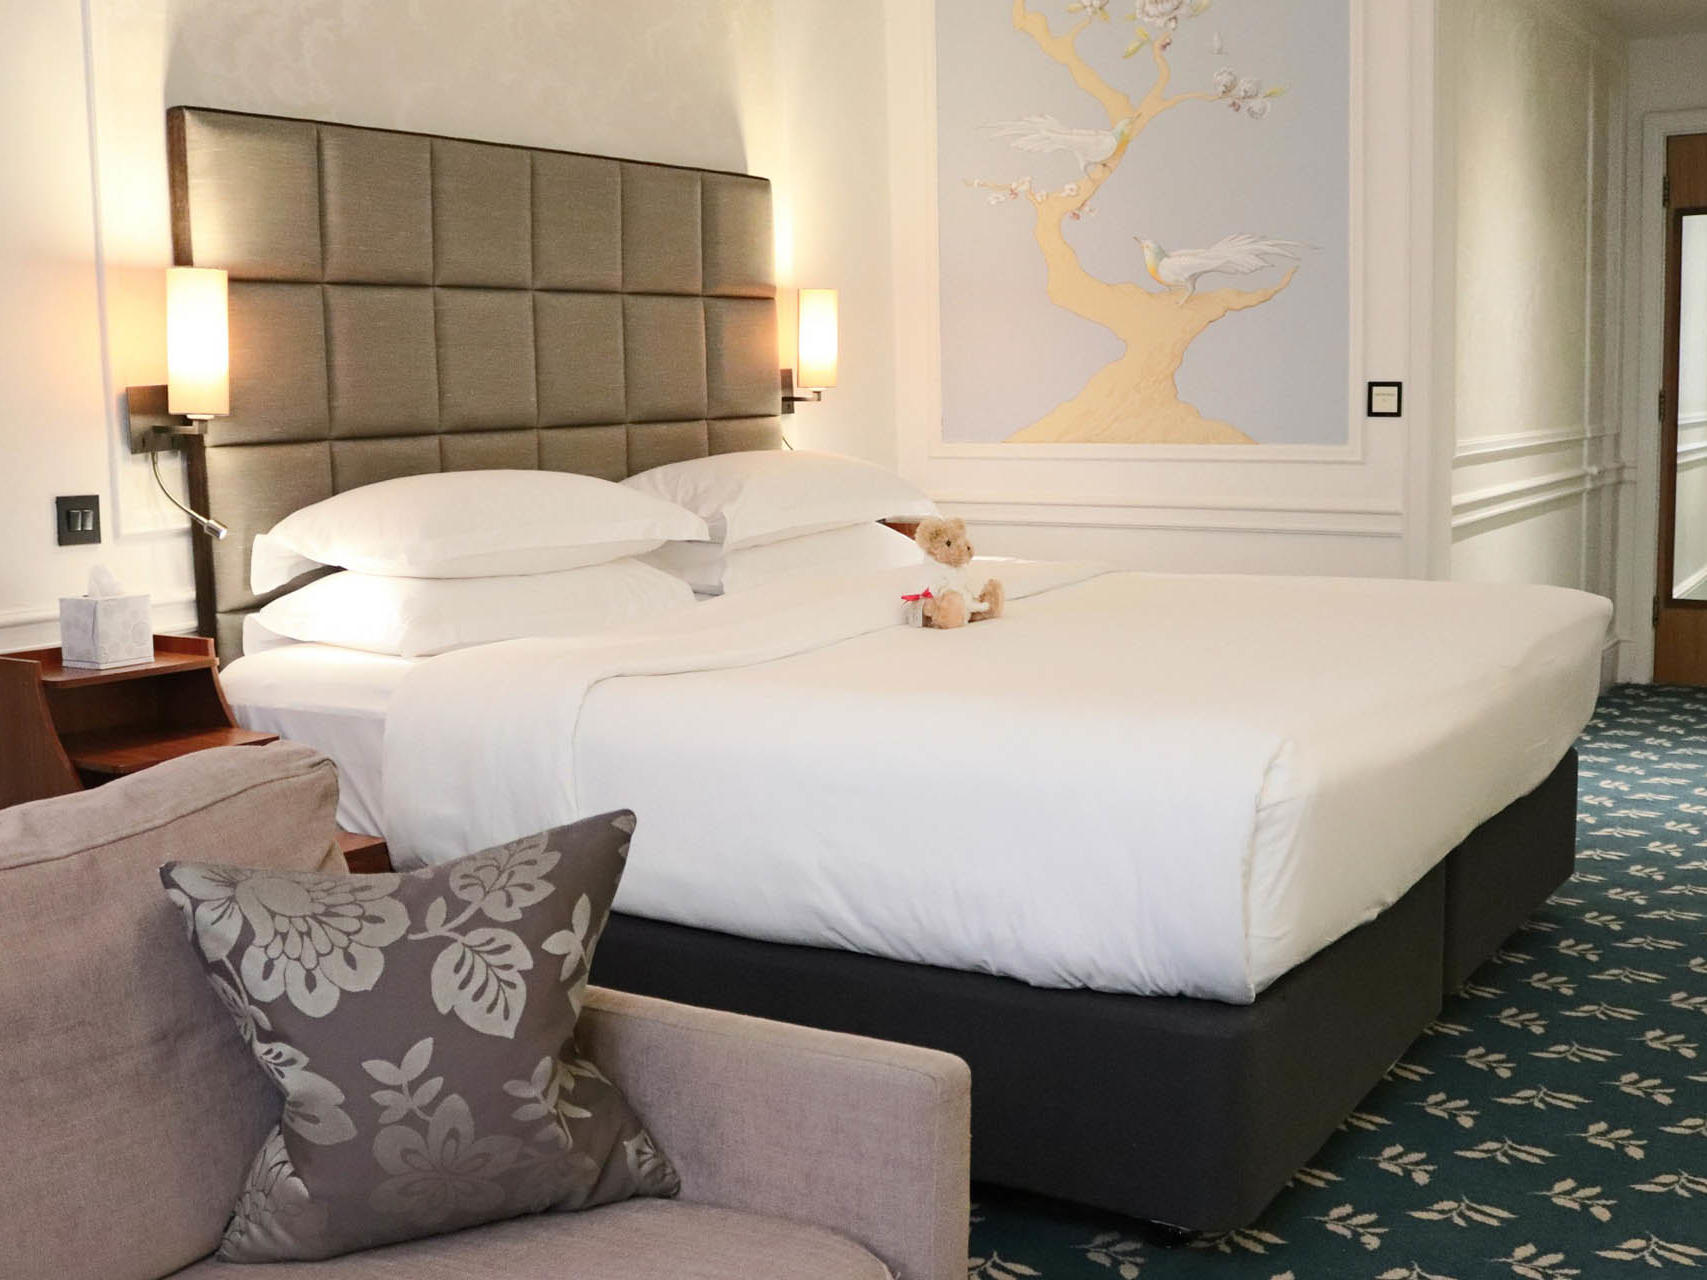 Club family room with family bed at Sloane Square Hotel